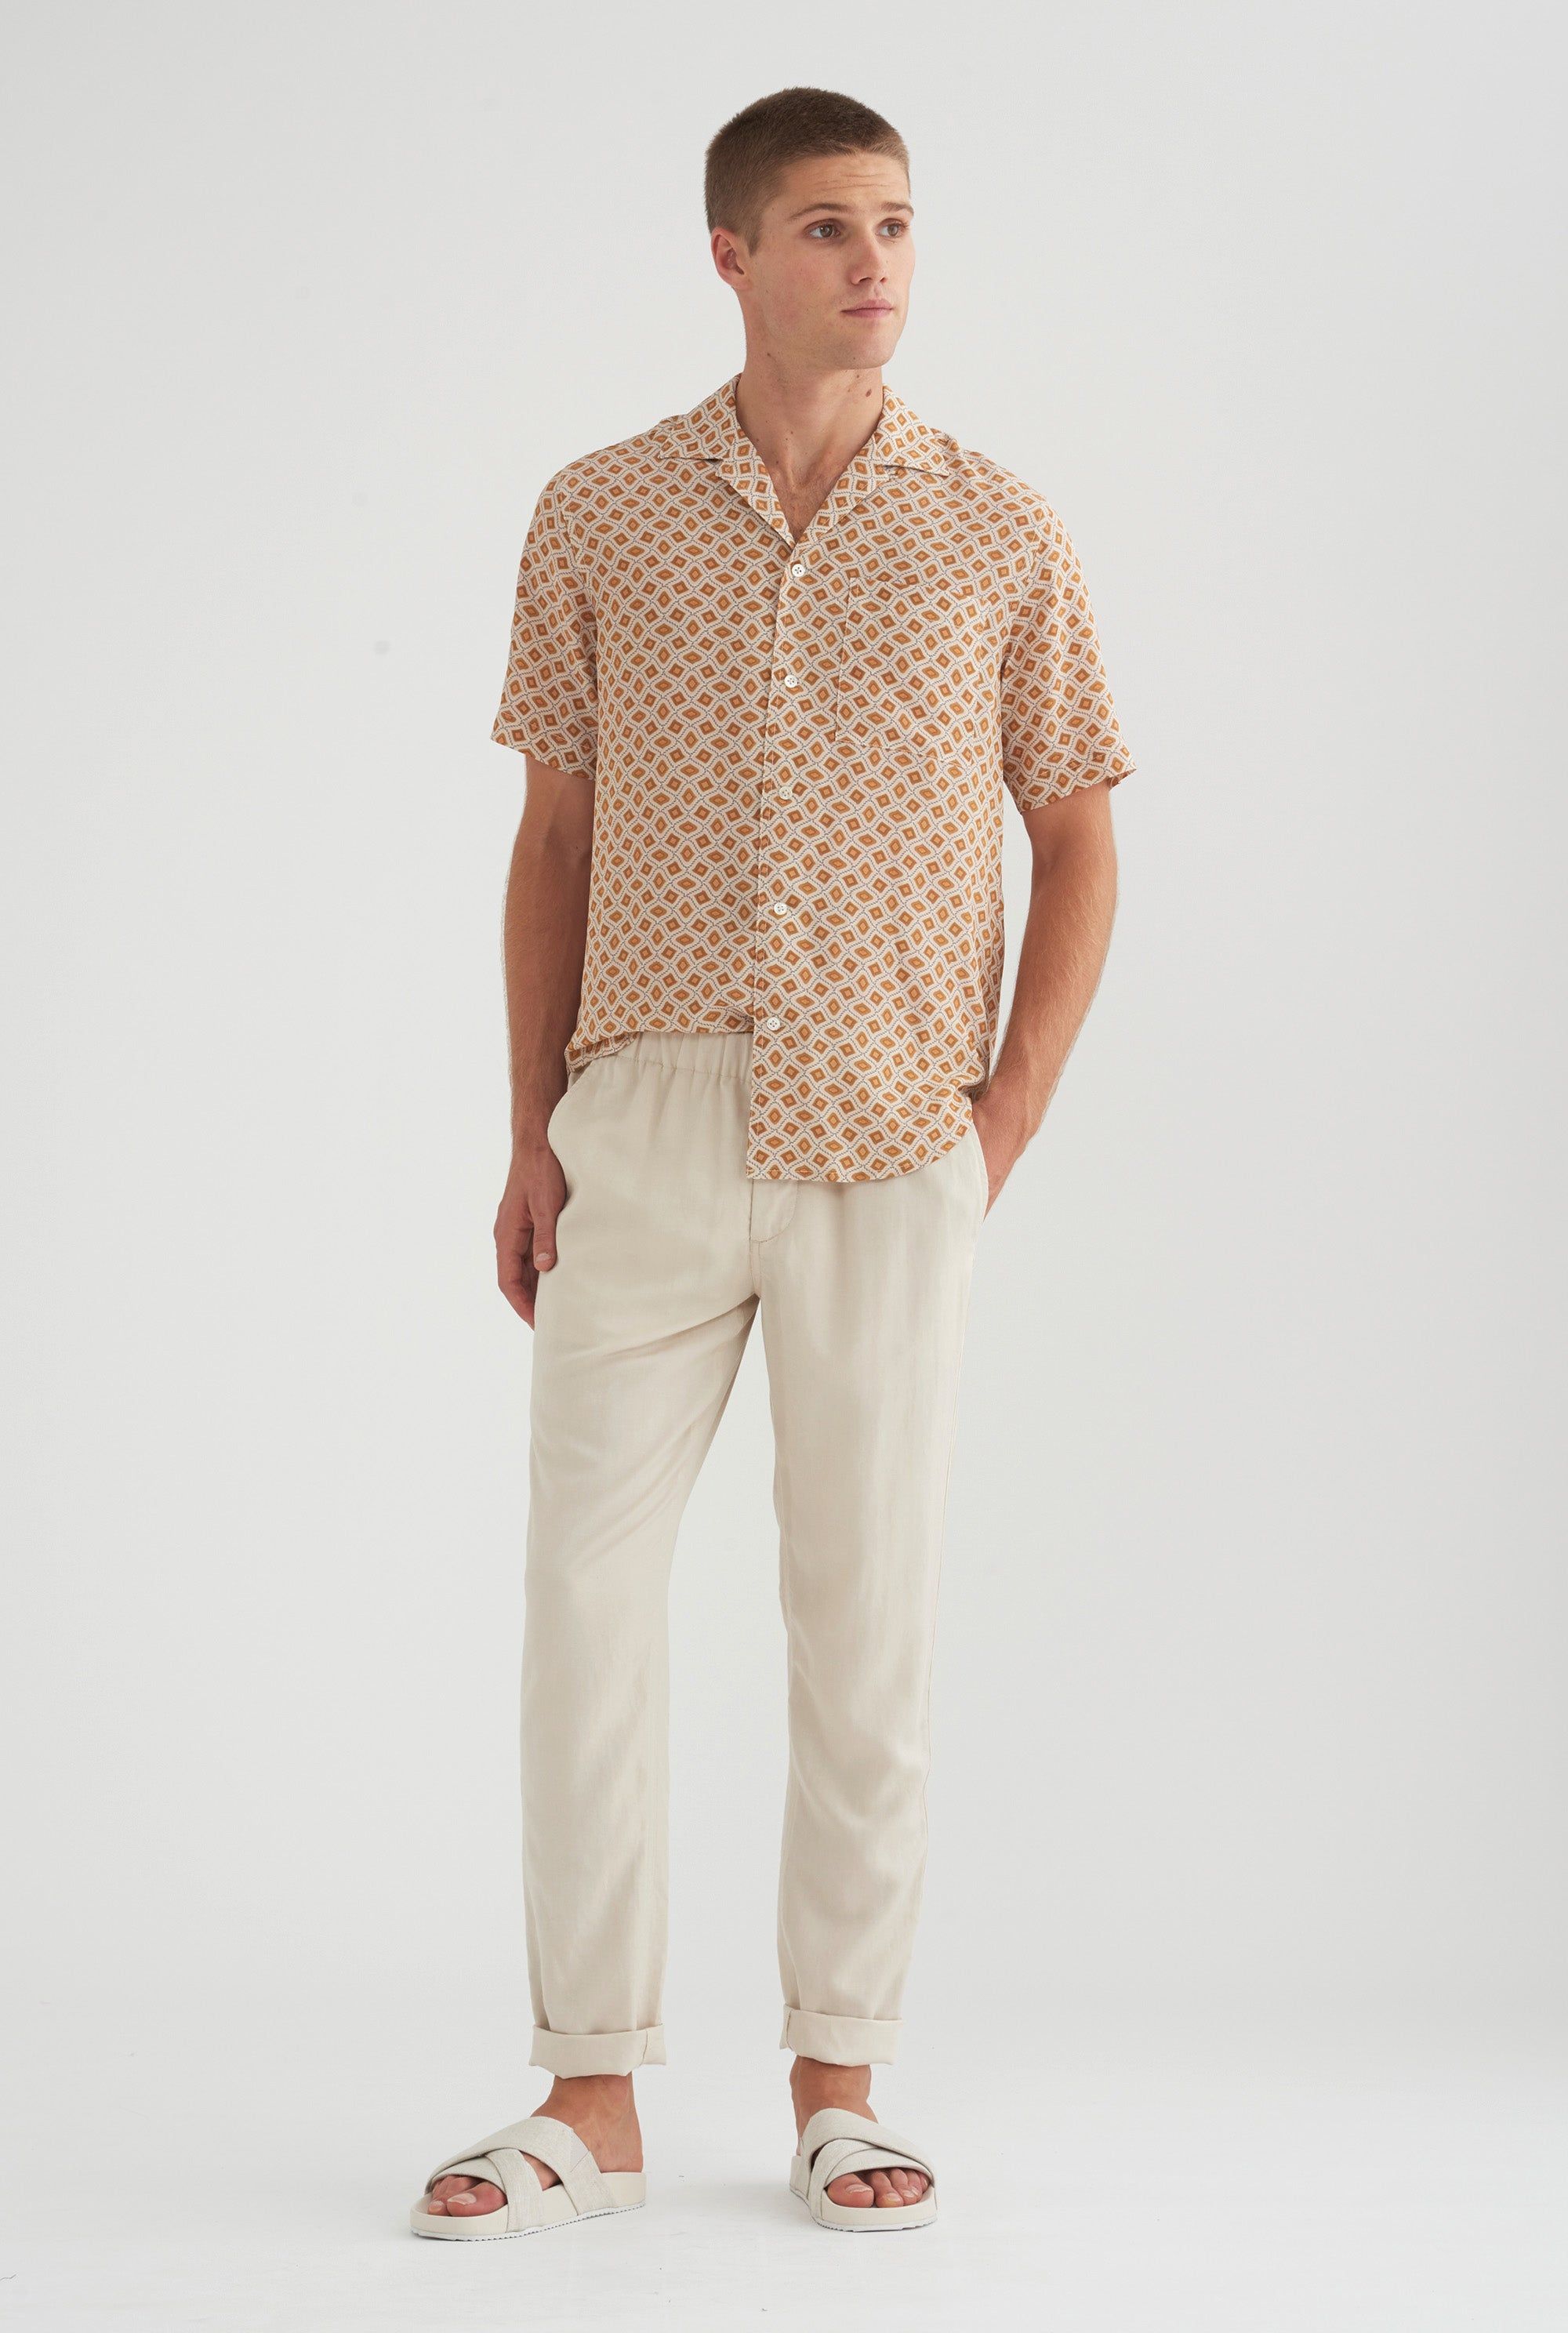 Tencel Lounge Chino - Oat/Taupe Tape